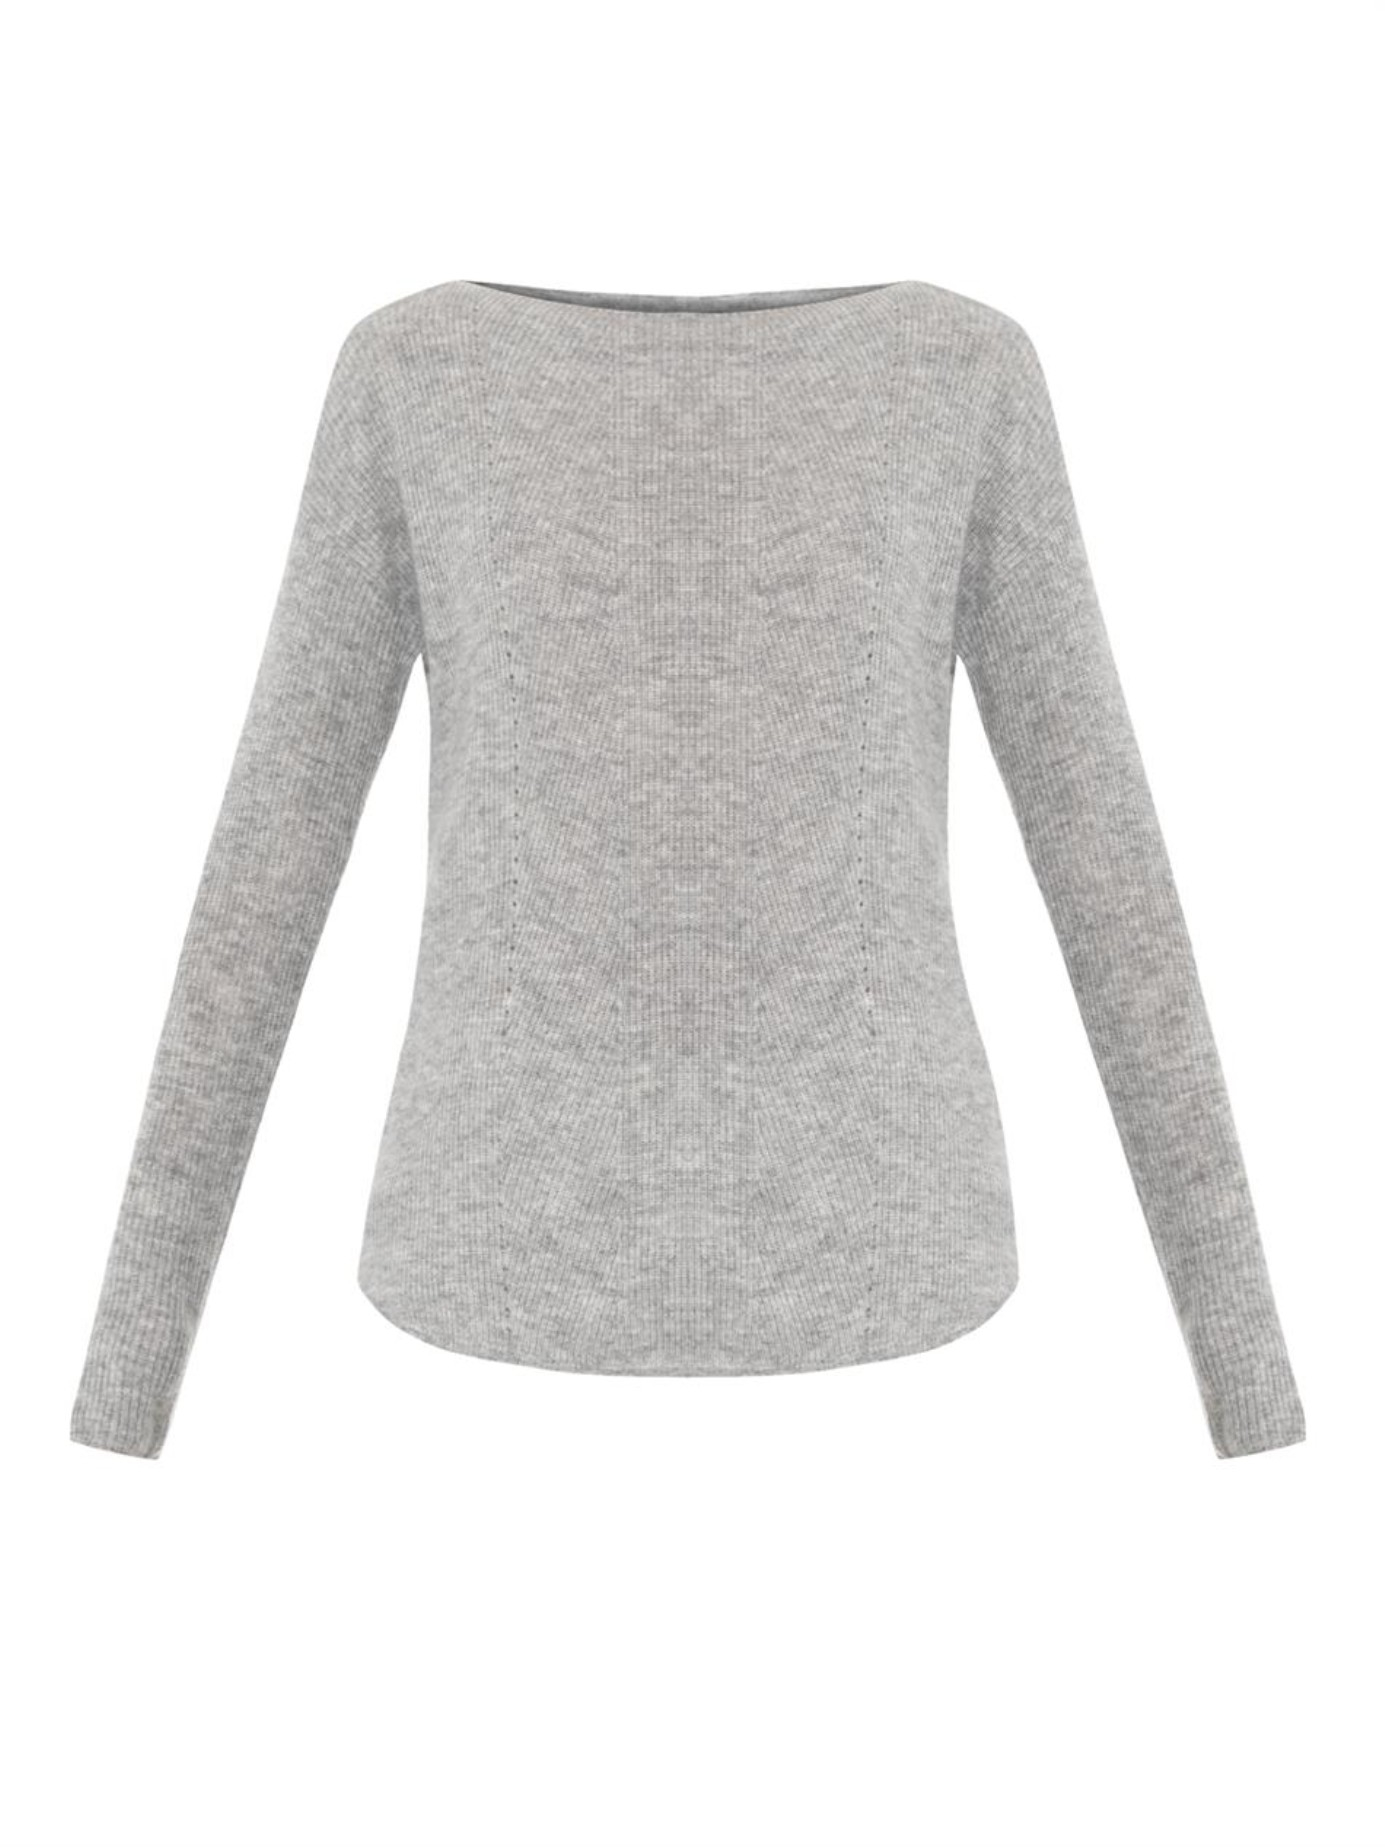 870a16d1a1 Vince Boat-Neck Cashmere Sweater in Gray - Lyst